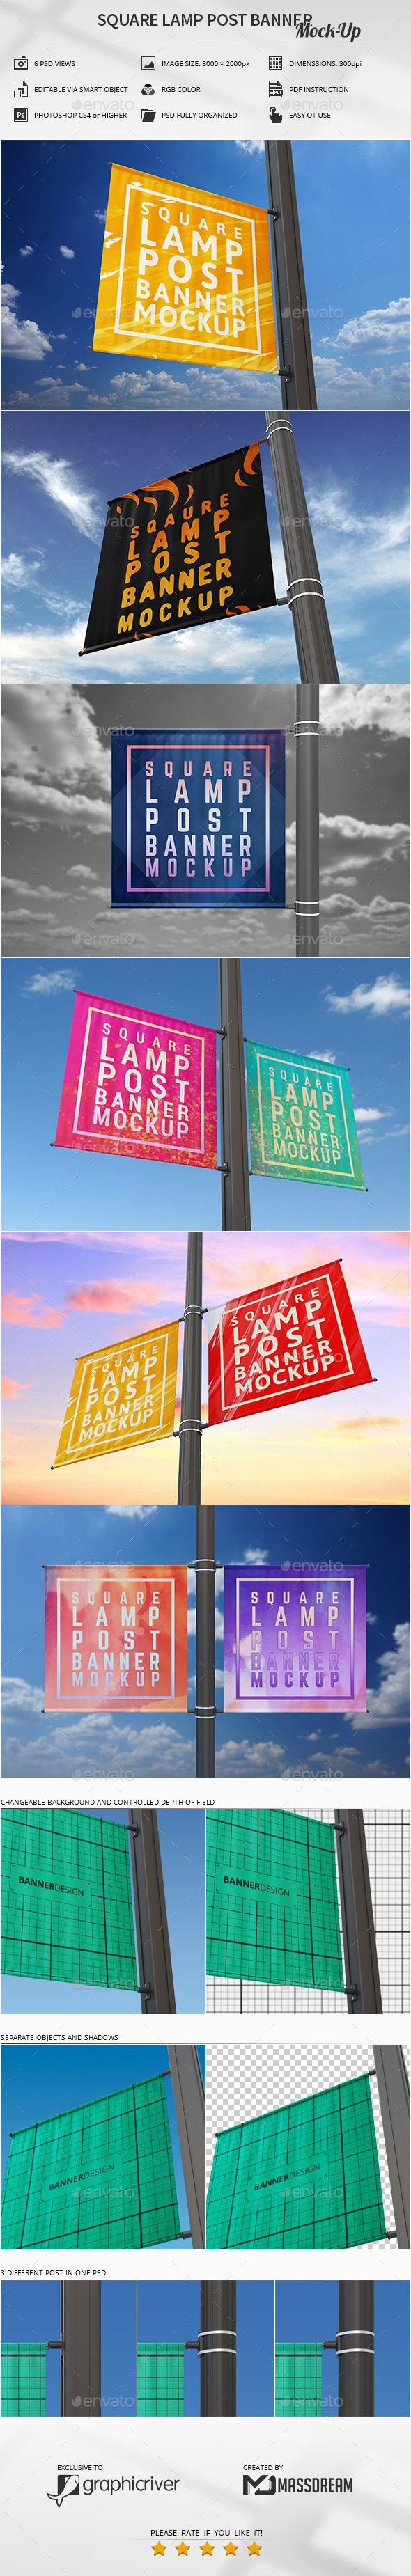 Square Lamp Post Banner Mock-Up - Signage Print